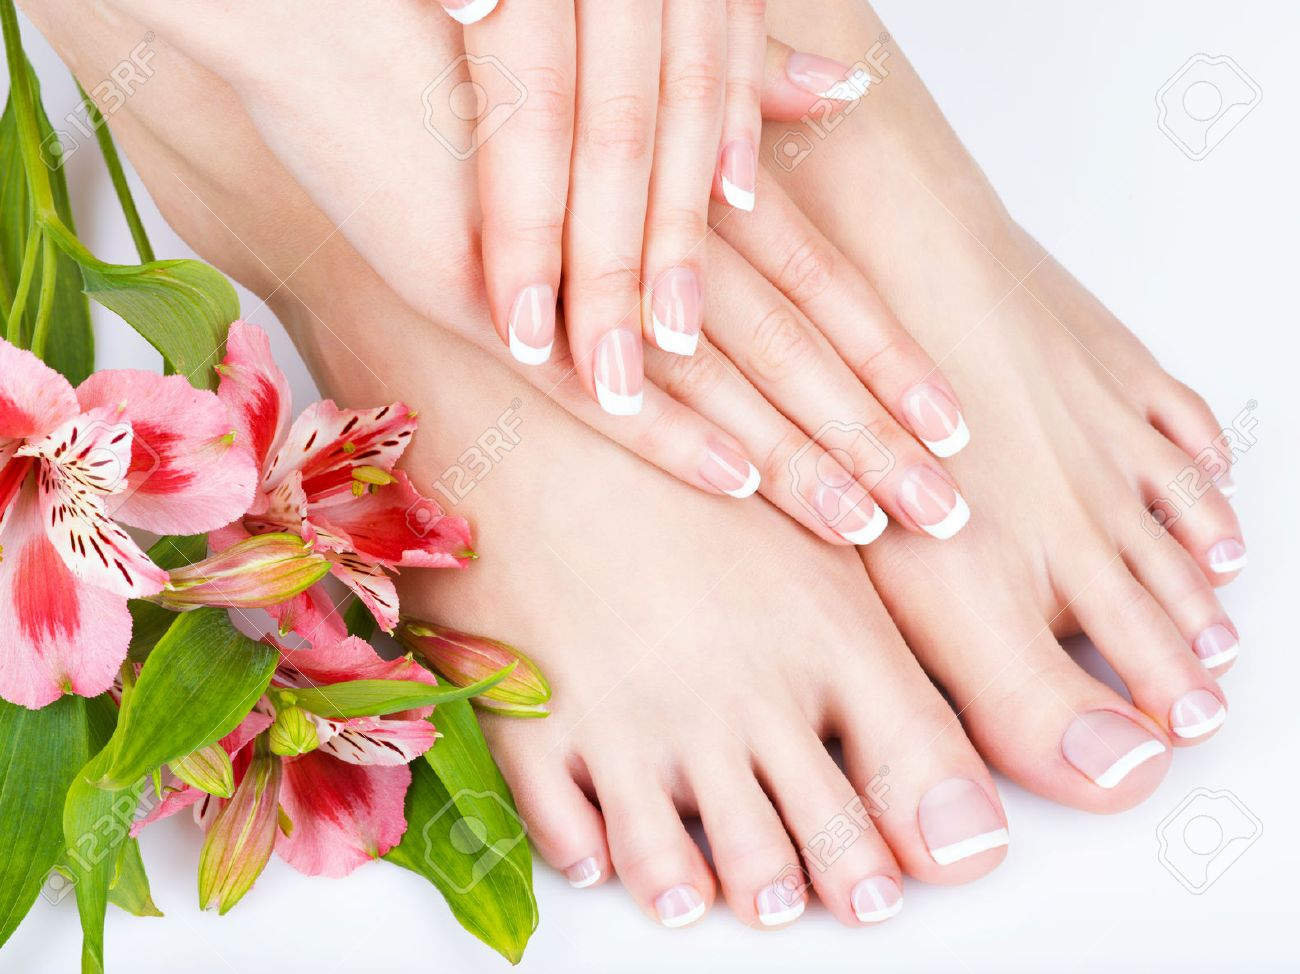 Closeup photo of a female feet at spa salon on pedicure and manicure procedure - Soft focus image Banque d'images - 54100908